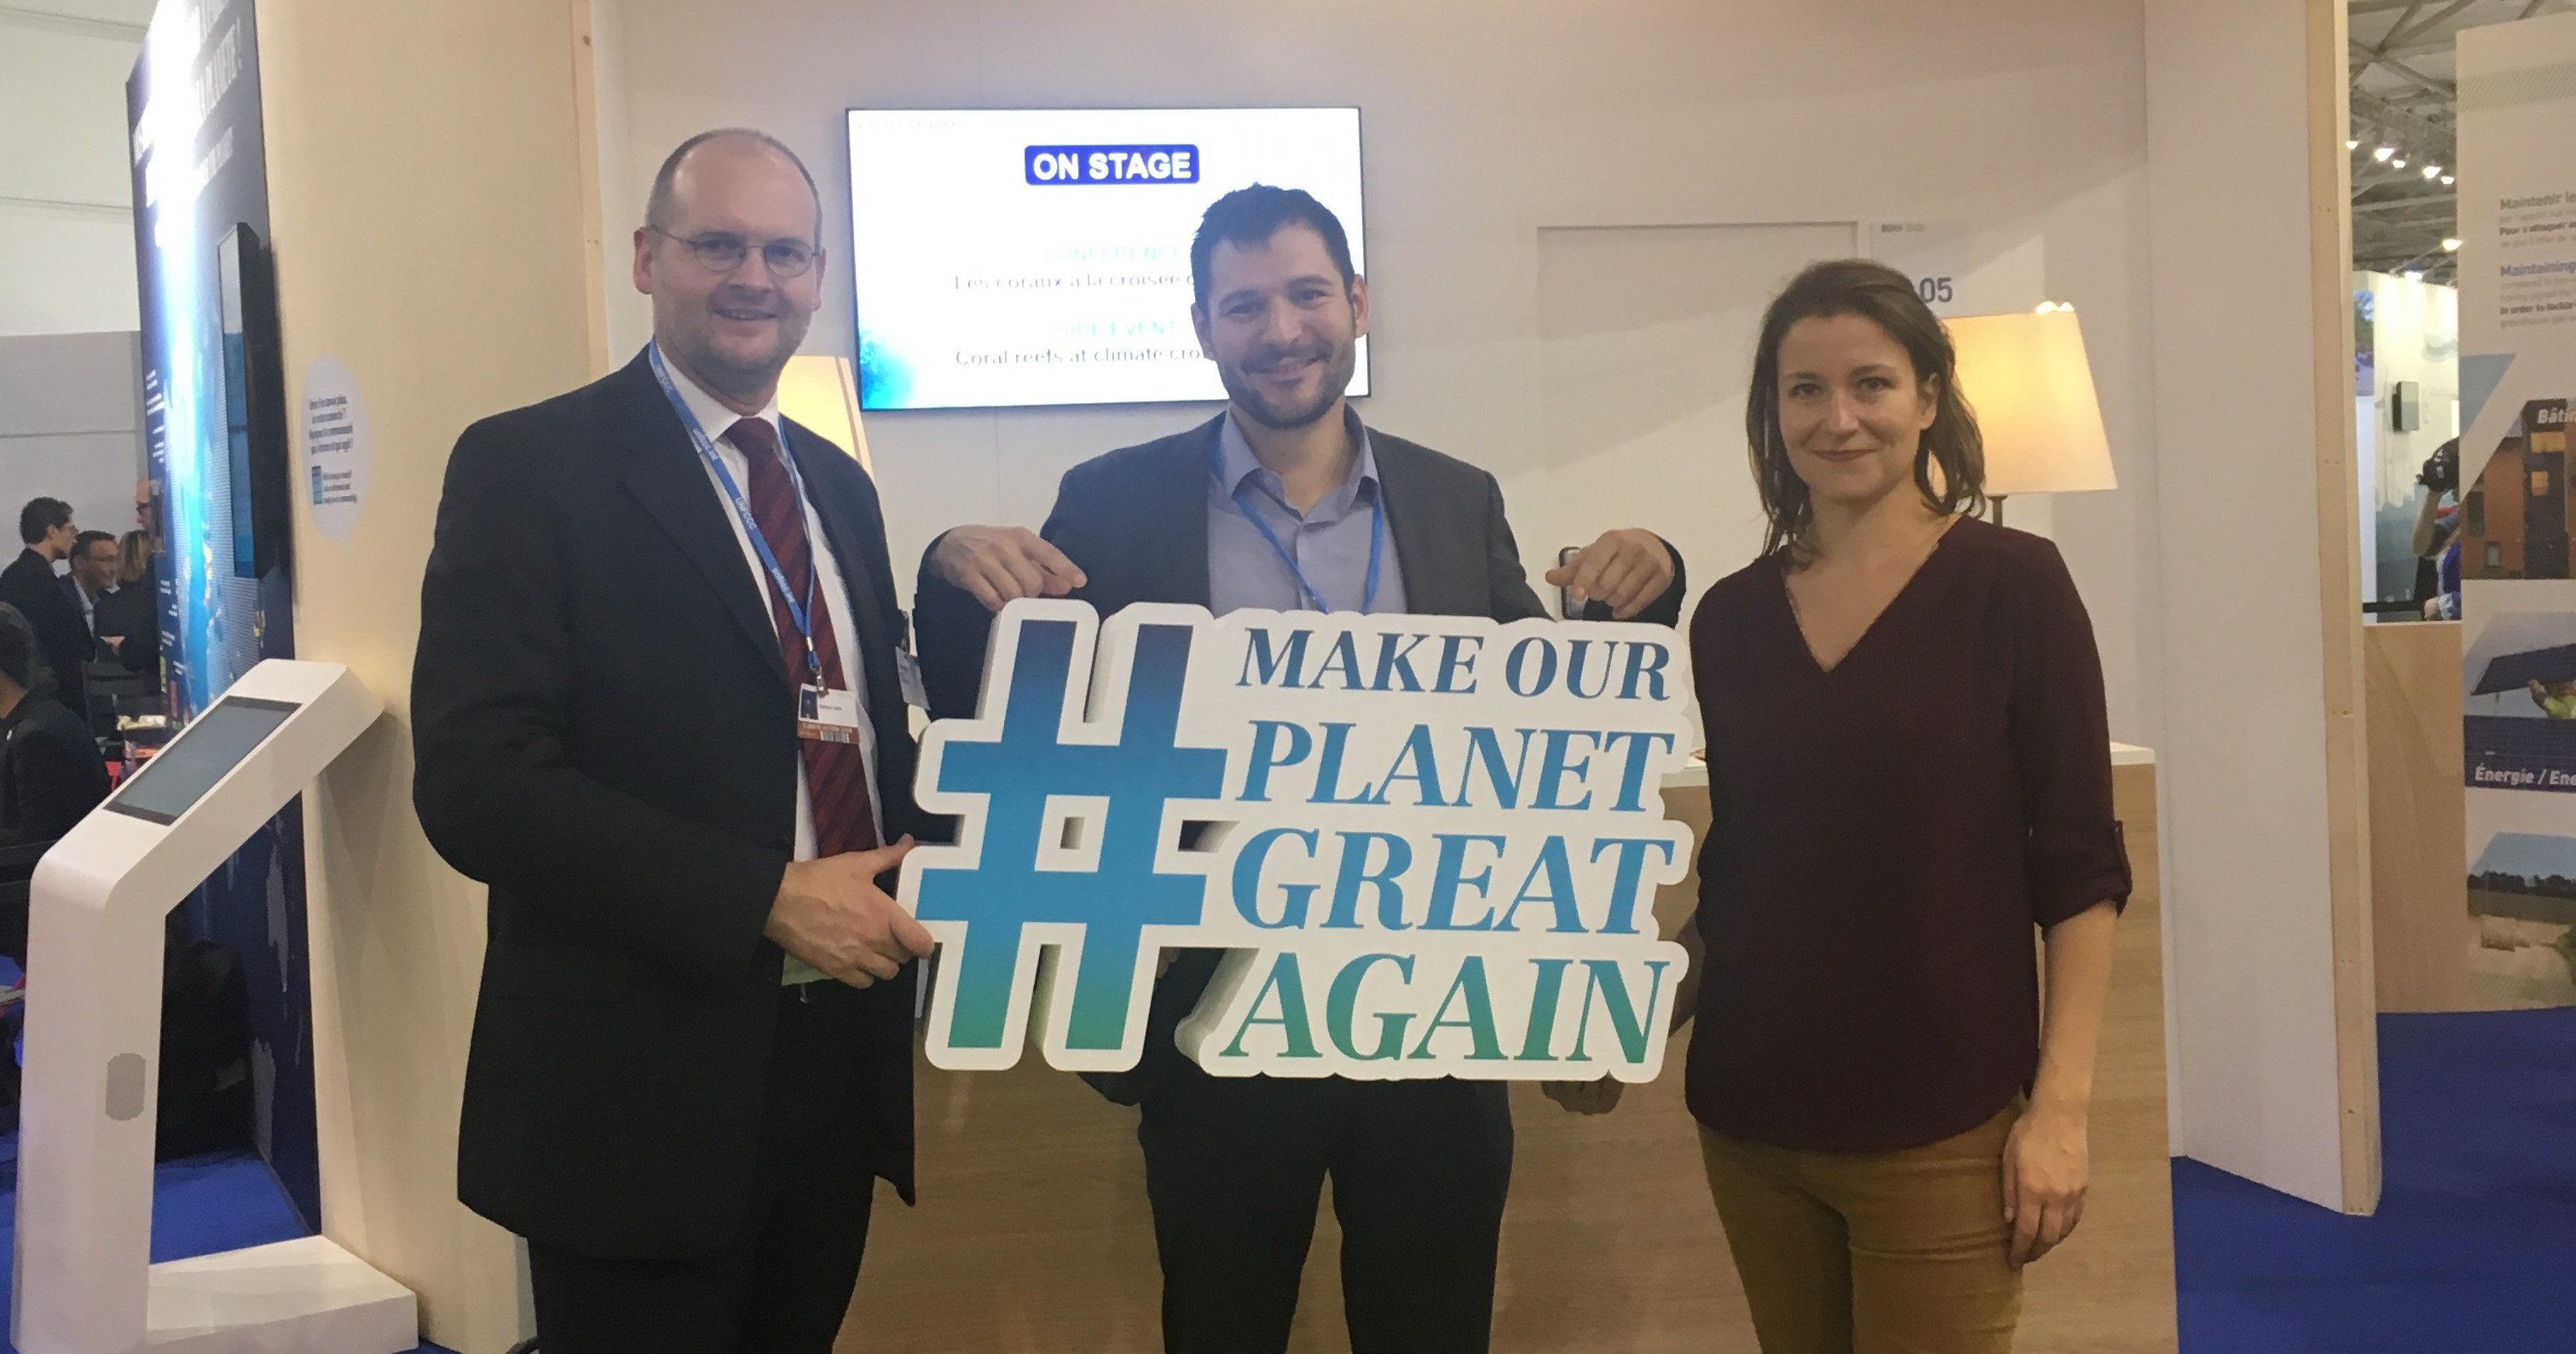 CODATU and MobiliseYourCity at the COP23 event